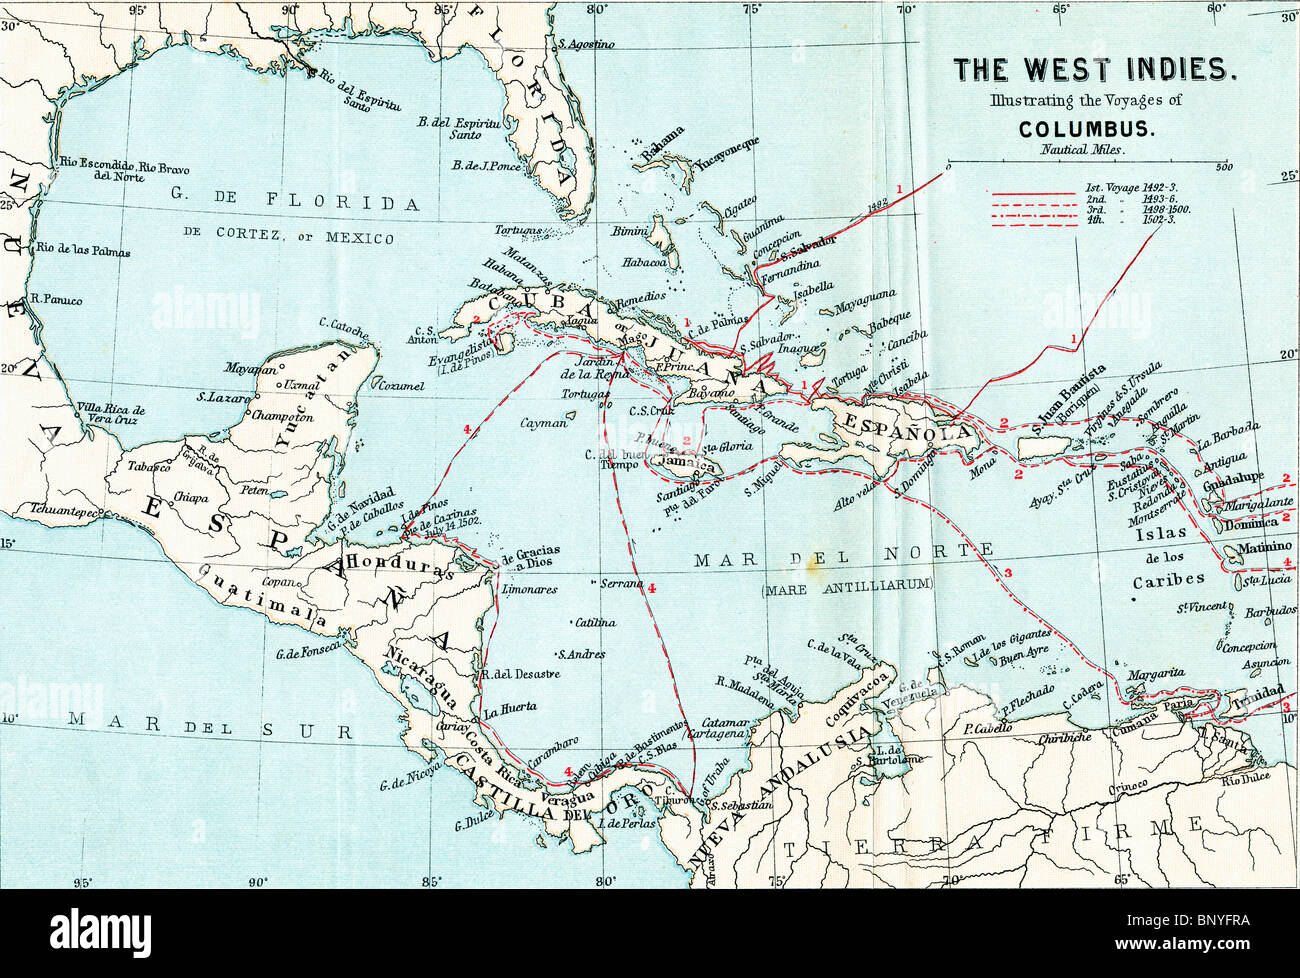 Map Of The West In S Illustrating The Voyages Of